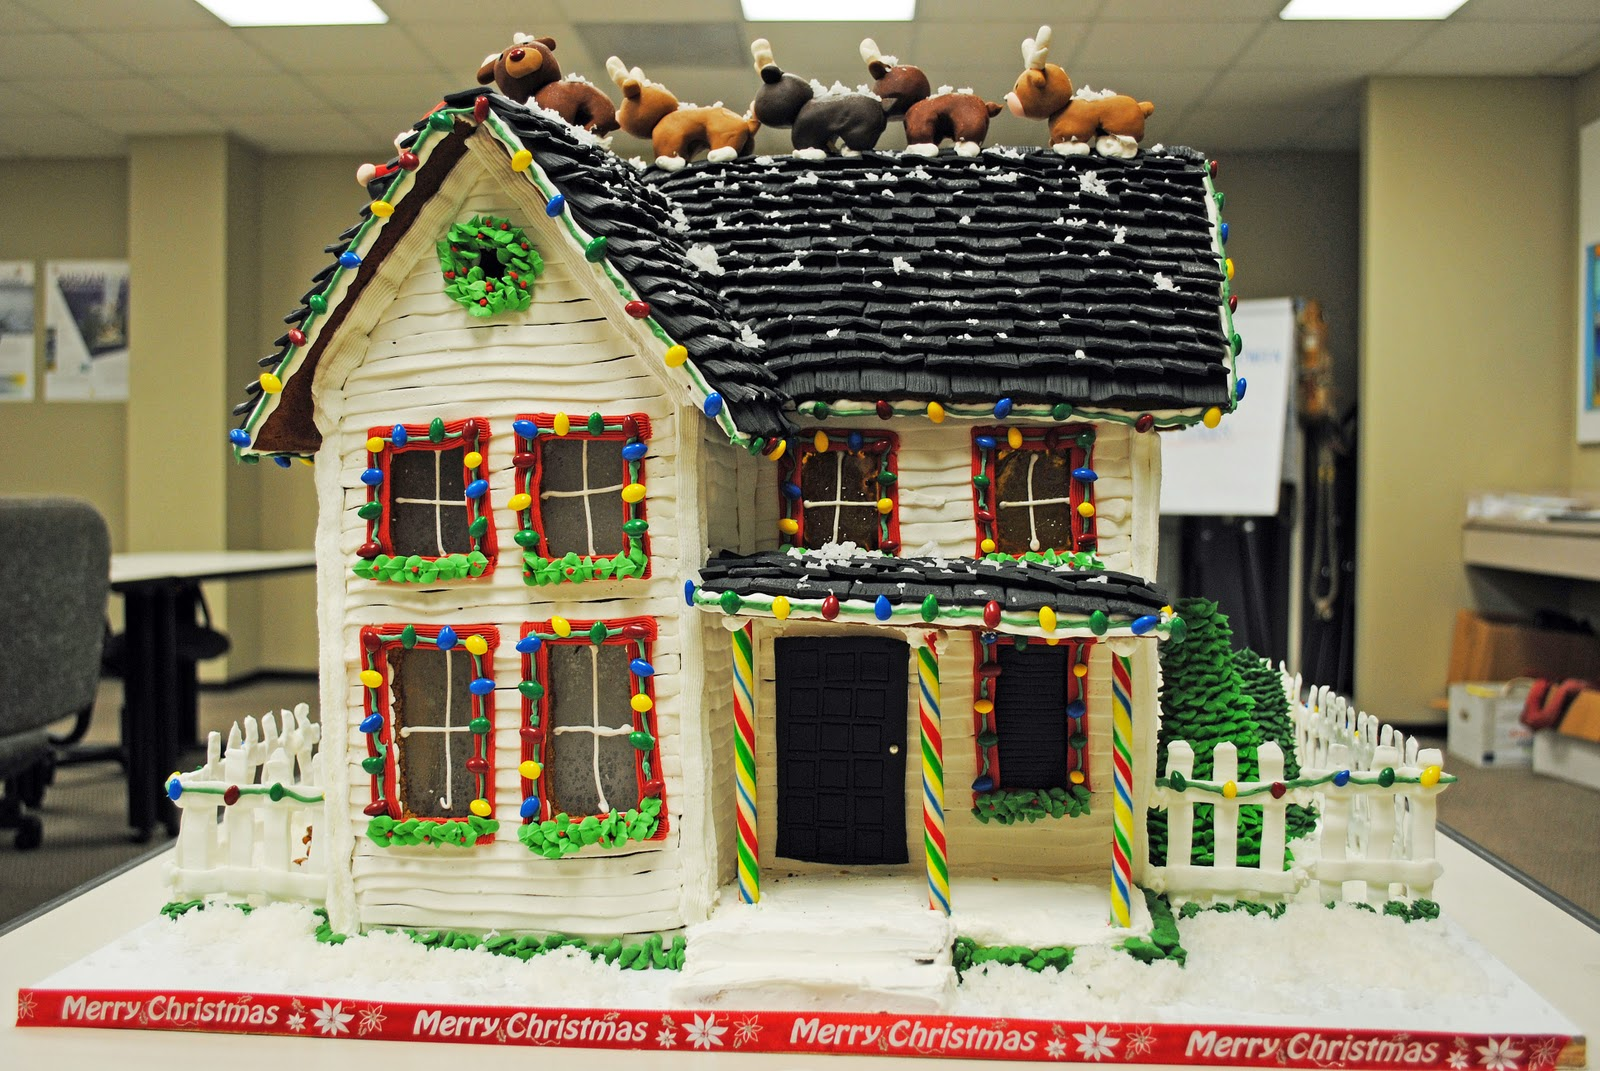 Excellent Gingerbread House Ideas Howtocookthat Dessert Chocolate Gingerbread House Ideas Gingerbread House Ideas Kindergarten Opia200911gingerbread House Ideas ideas Gingerbread House Ideas